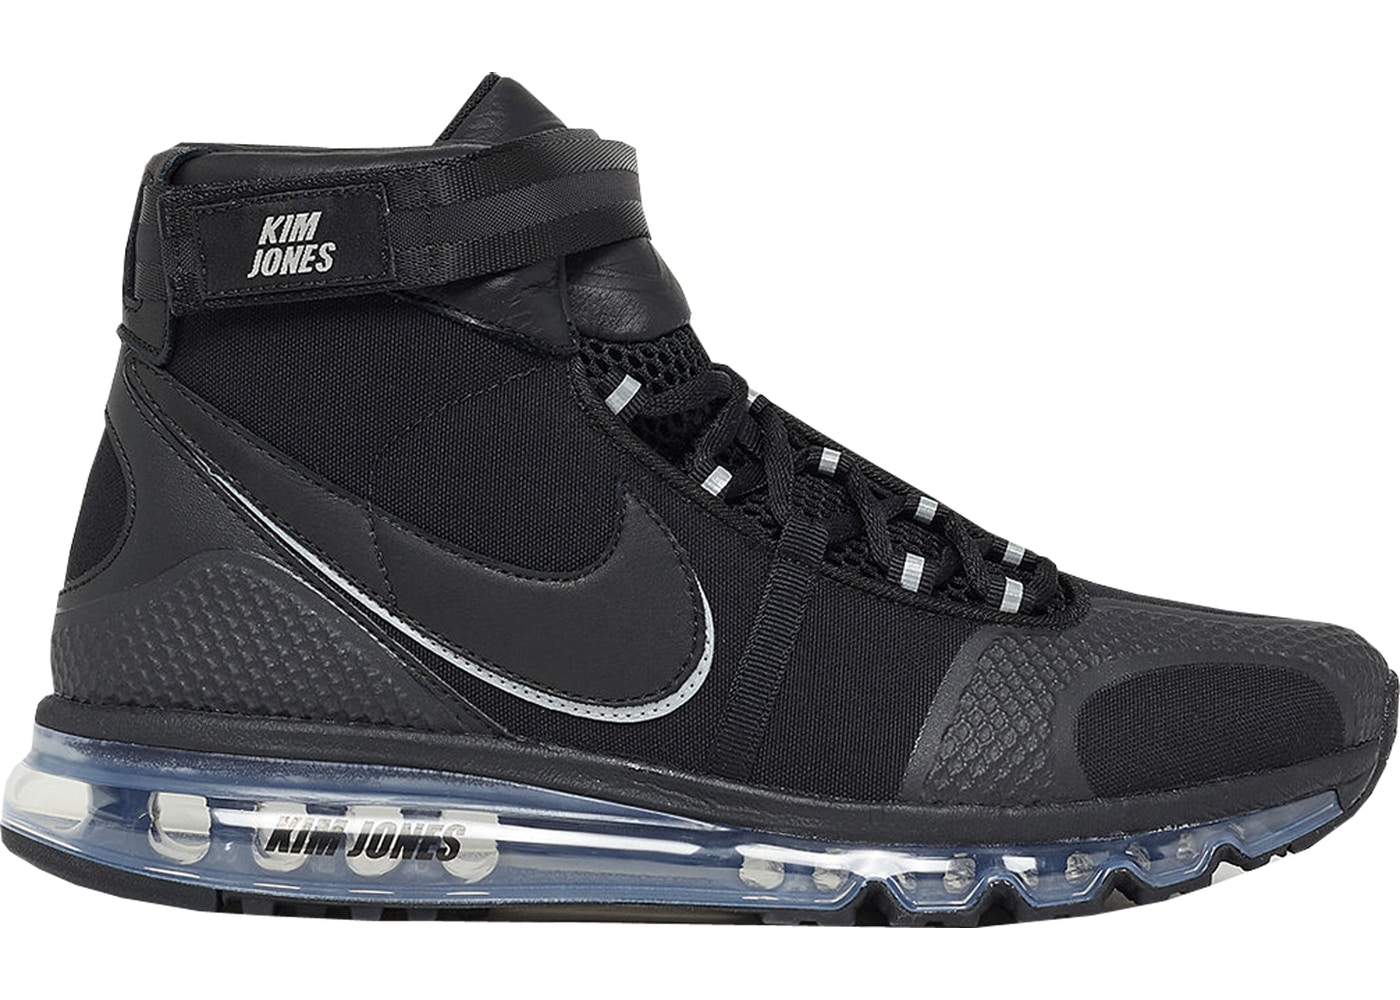 W Mega Air Max 360 Hi Kim Jones Black - AO2313-001 ZA27